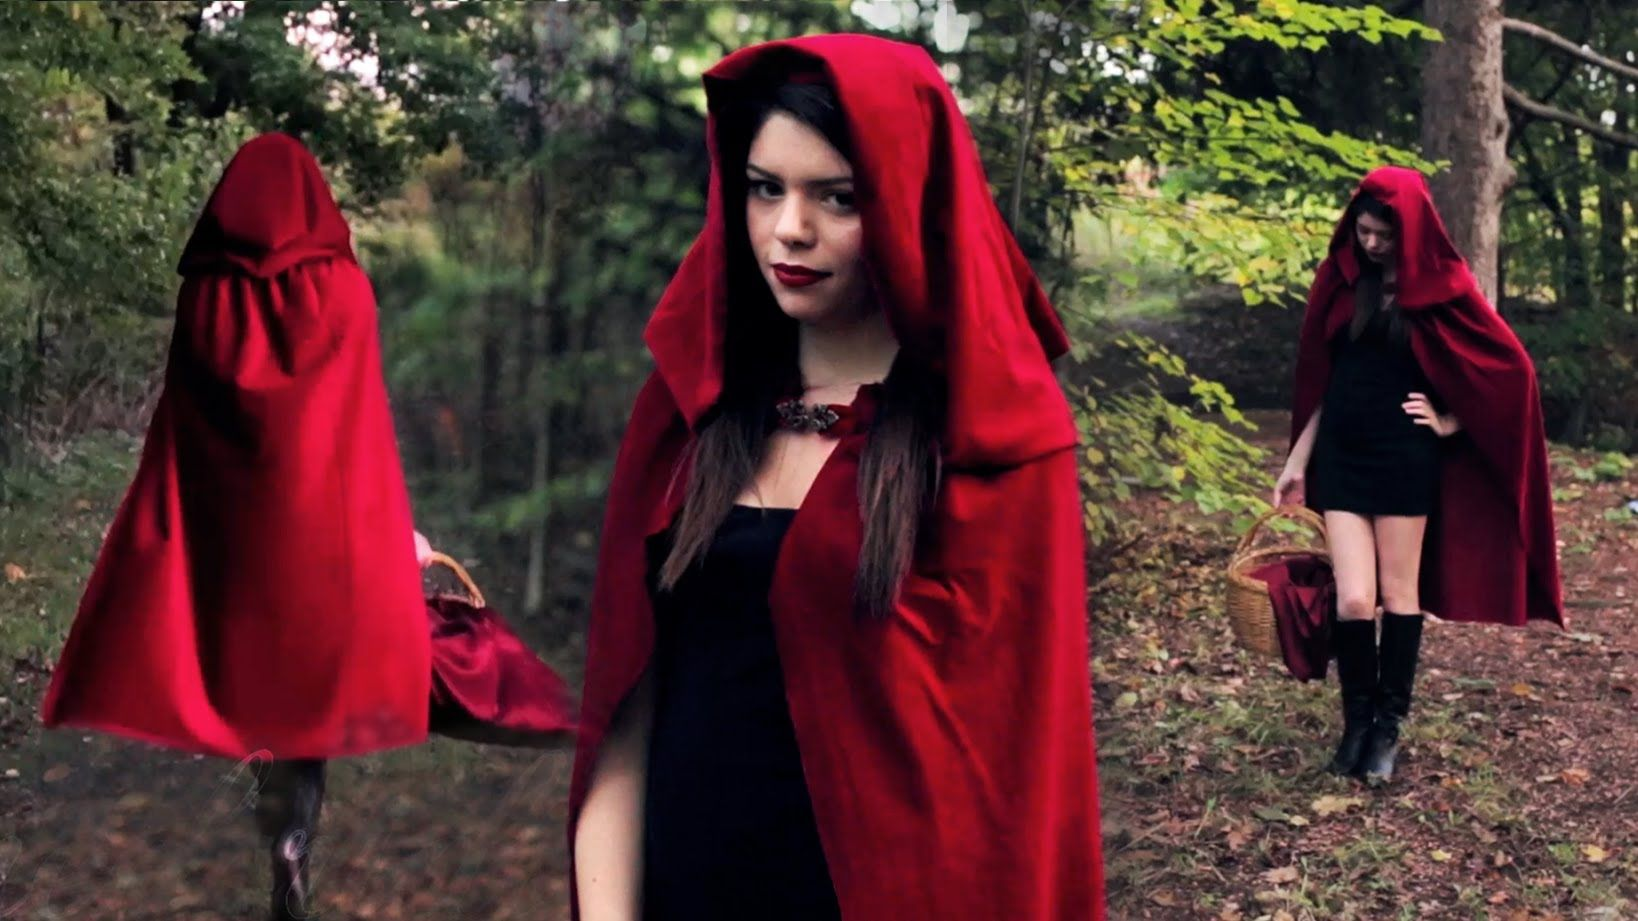 Little Red Riding Hood Https Www Youtube Com Watch V Pmugwdjwxau Feature C4 Overv Red Riding Hood Costume Diy Red Riding Hood Costume Cool Halloween Costumes